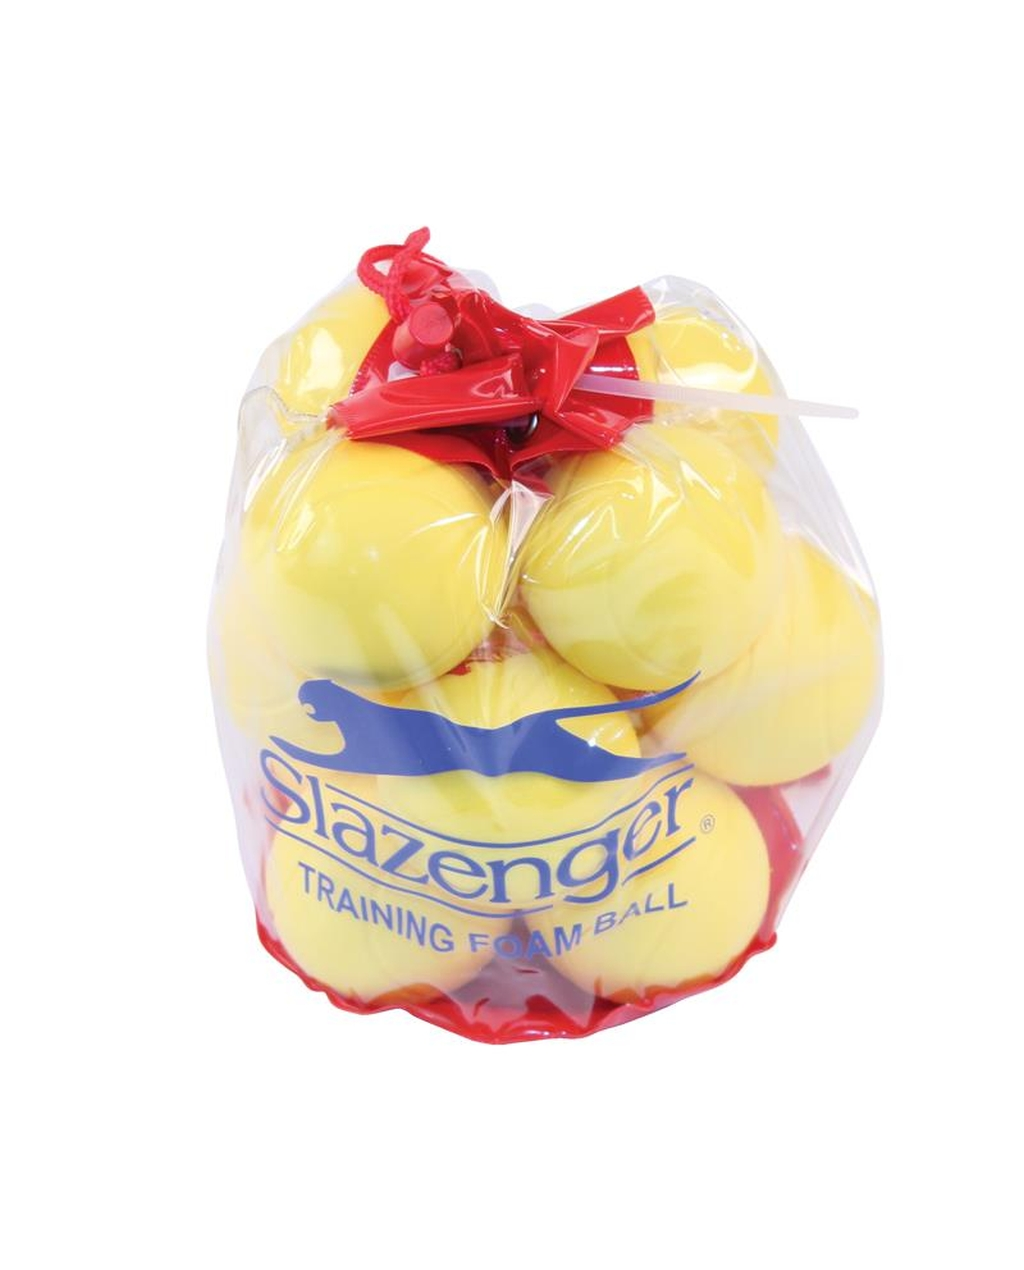 Slazenger Training Foam Tennis Balls